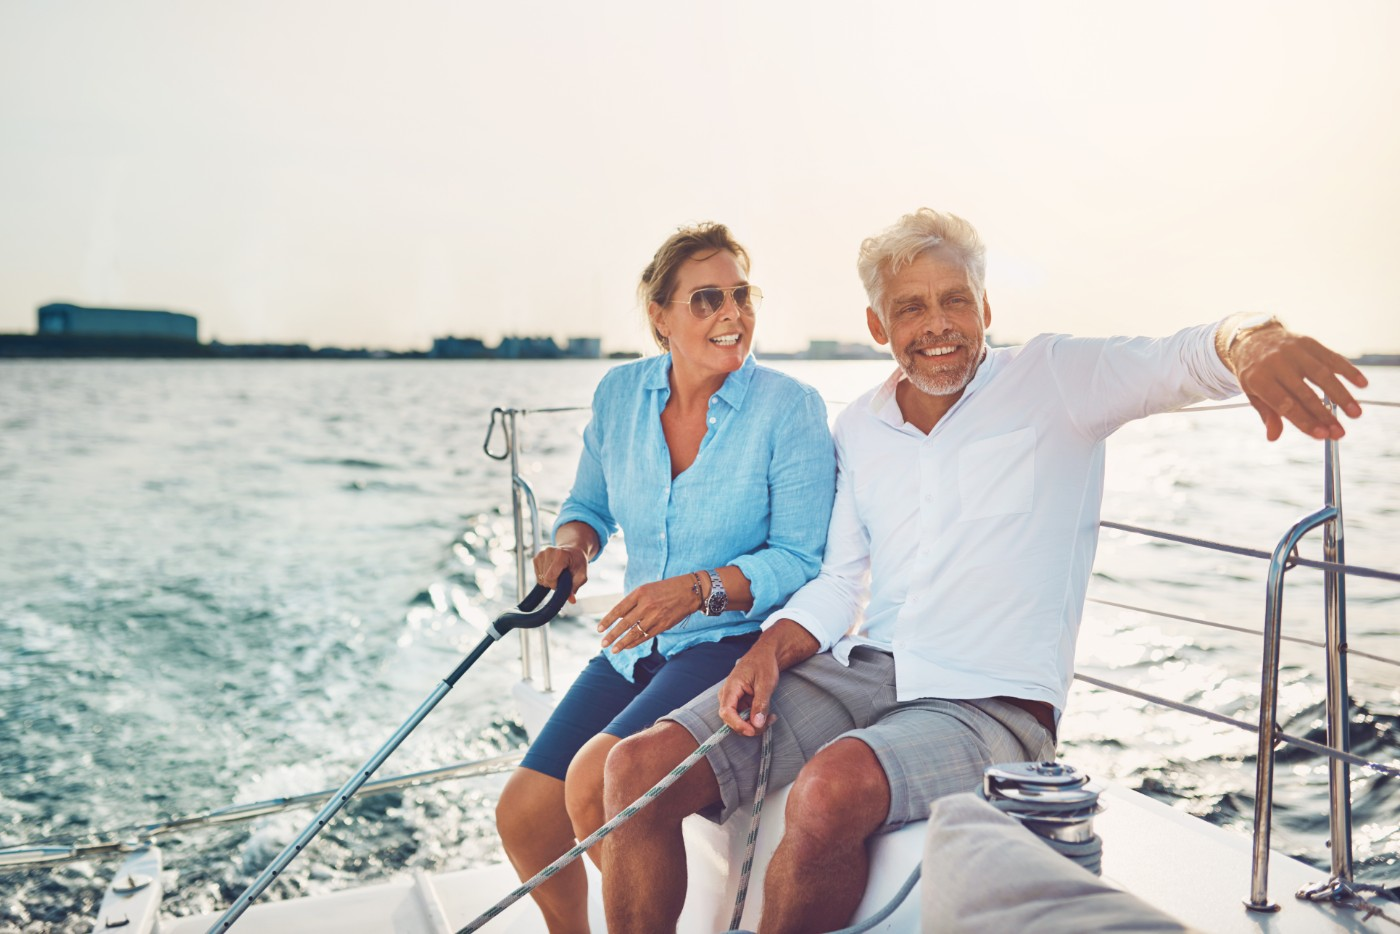 https://tickertapecdn.tdameritrade.com/assets/images/pages/md/What is an Annuity